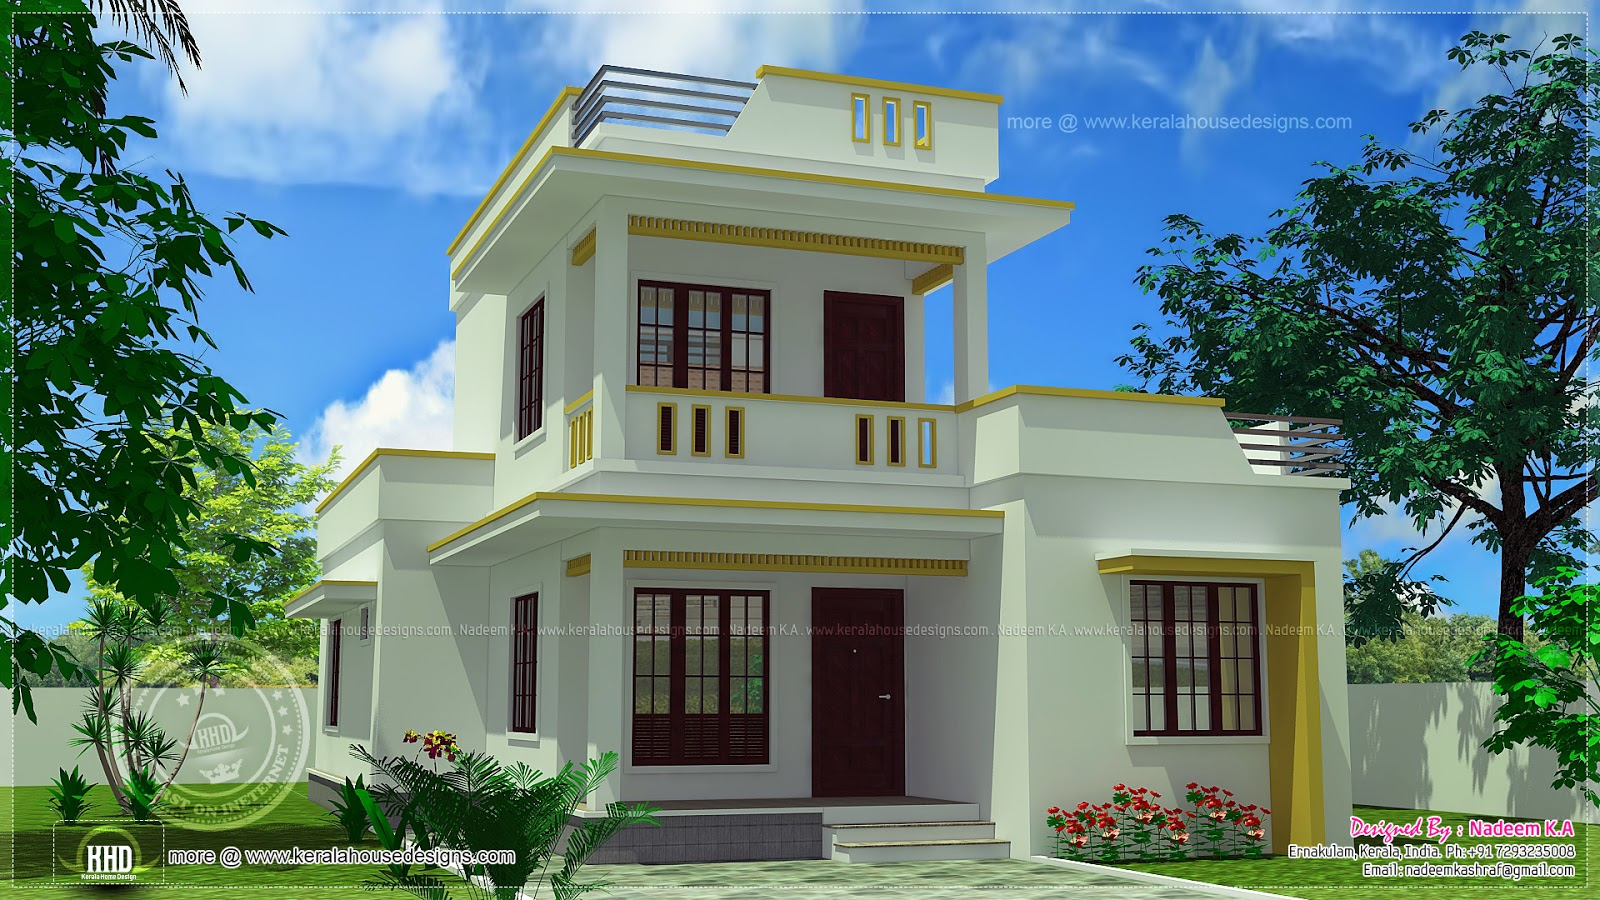 august 2013 kerala home design and floor plans On simple house design